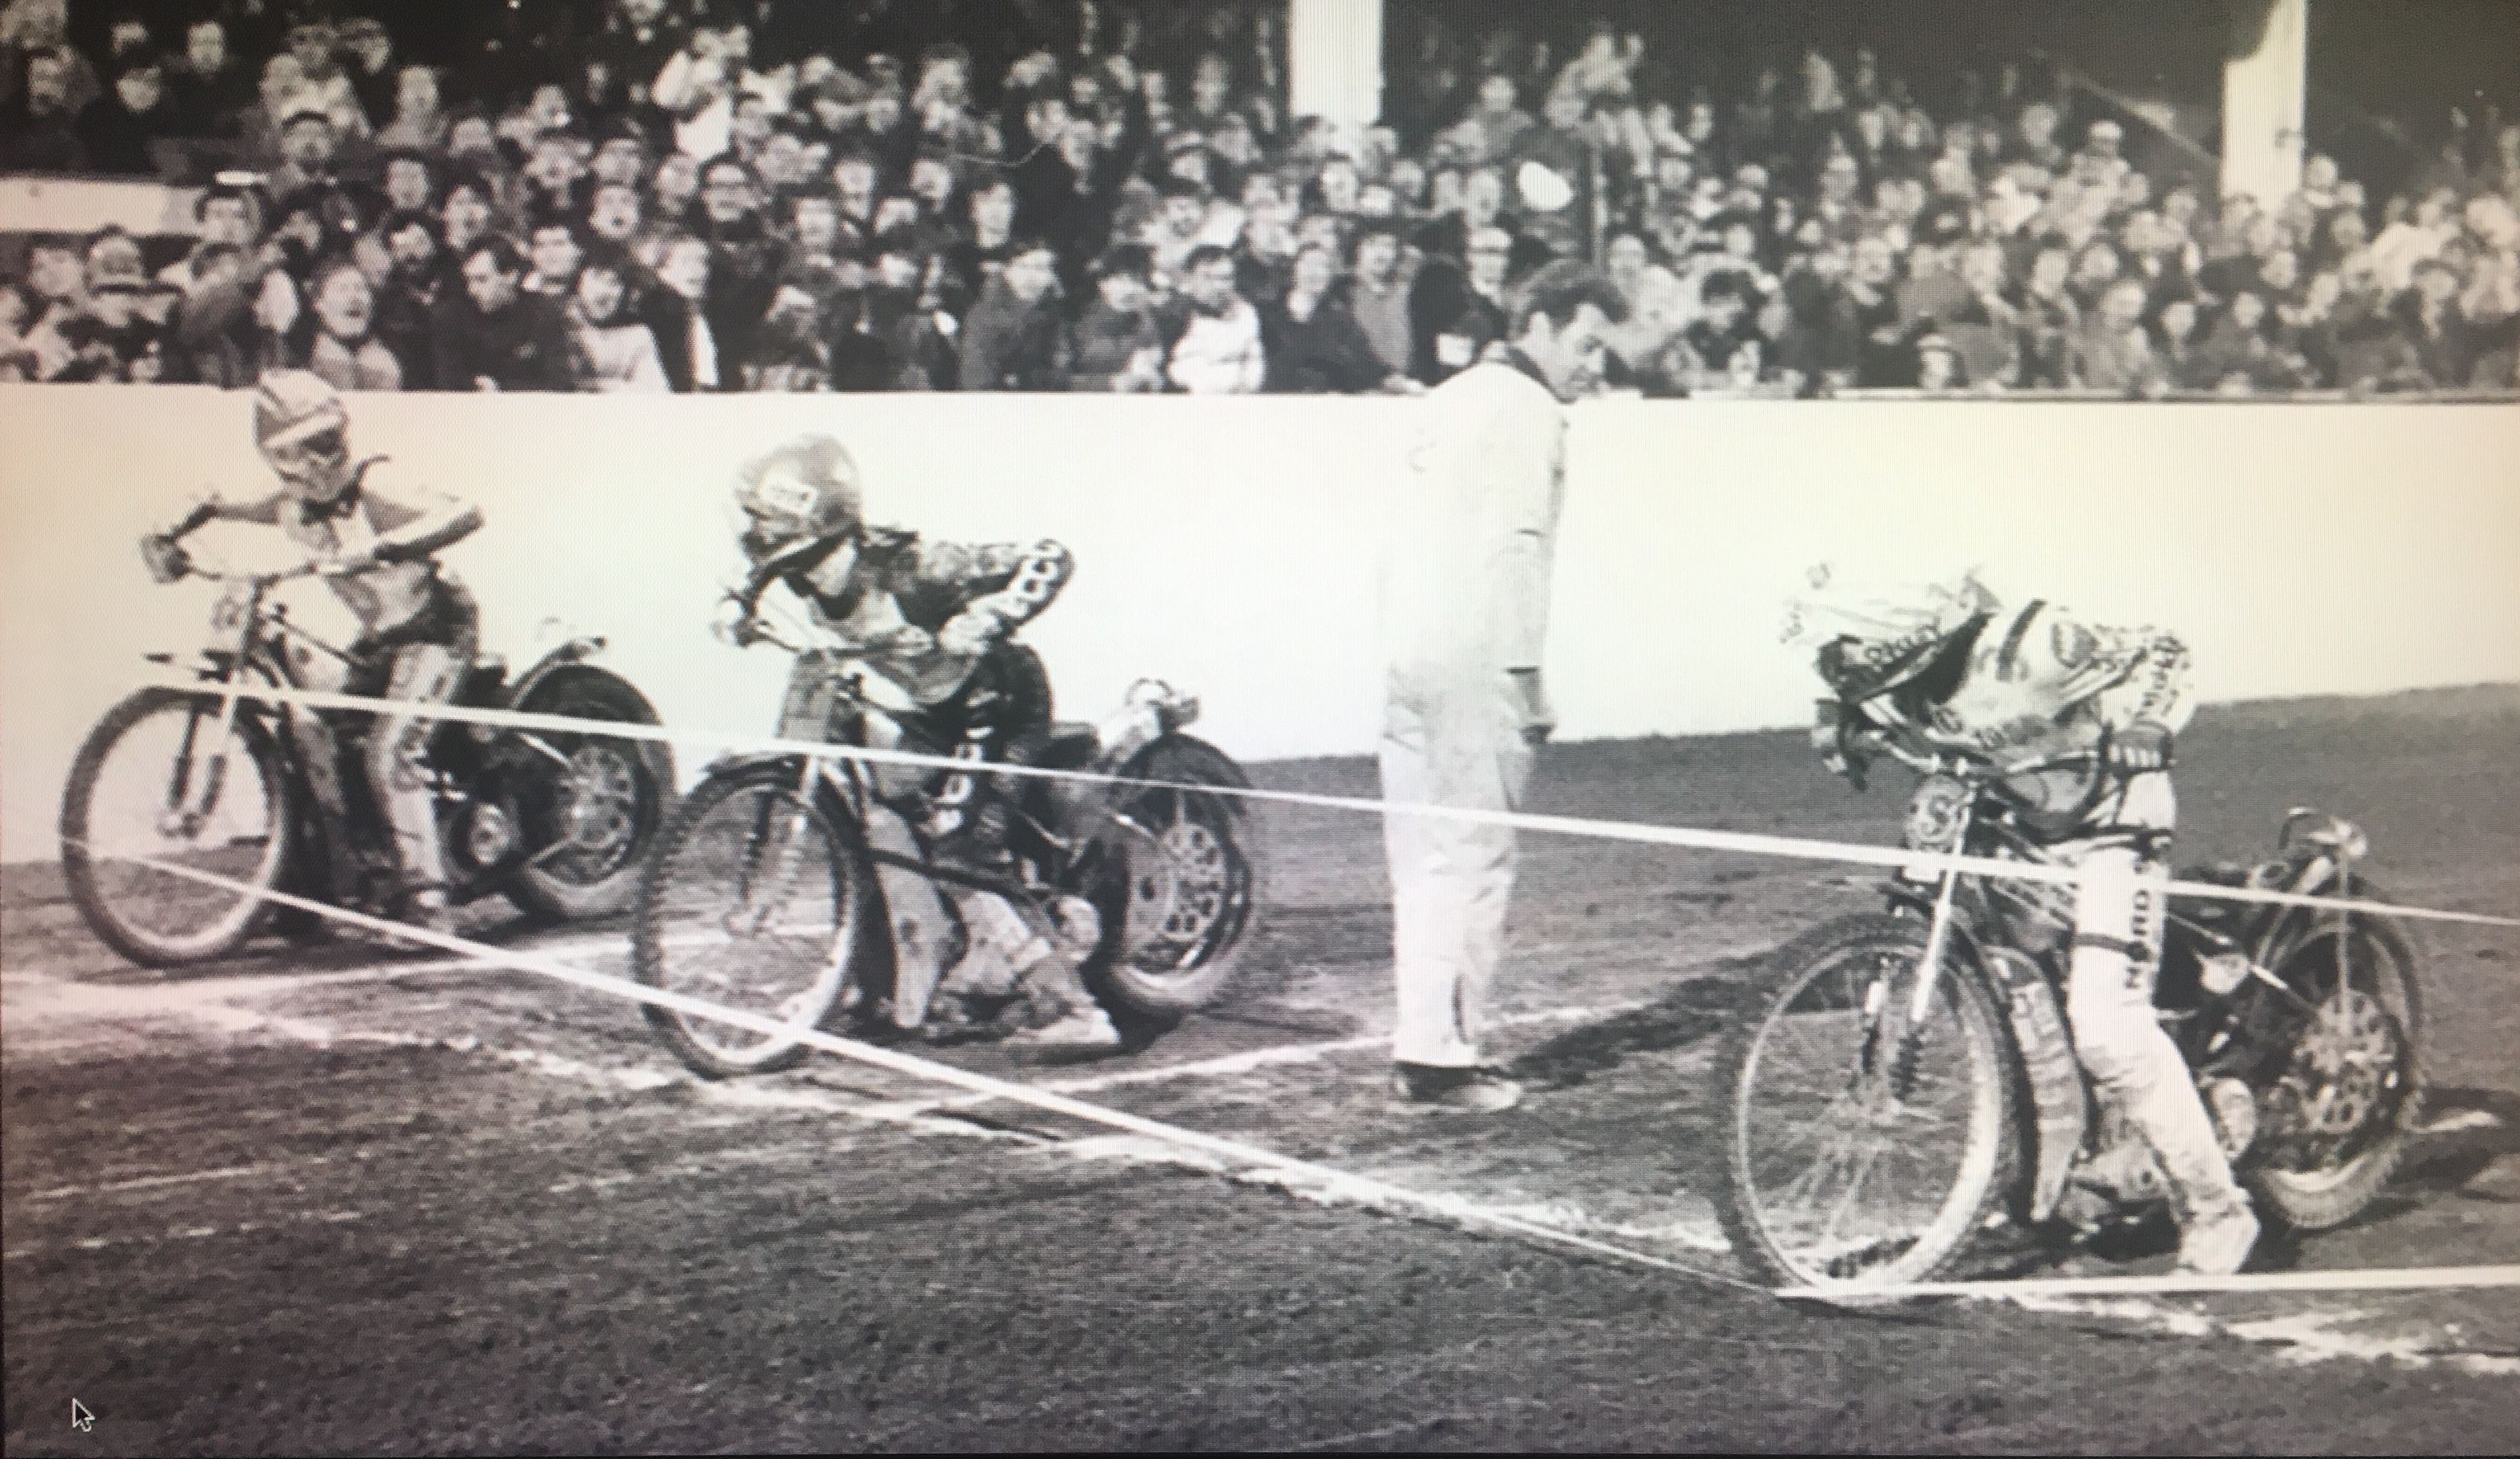 1909 DAREDEVIL CYCLONE CLARK WALL OF DEATH MOTORCYCLE STUNT PHOTO CARNIVAL SHOW